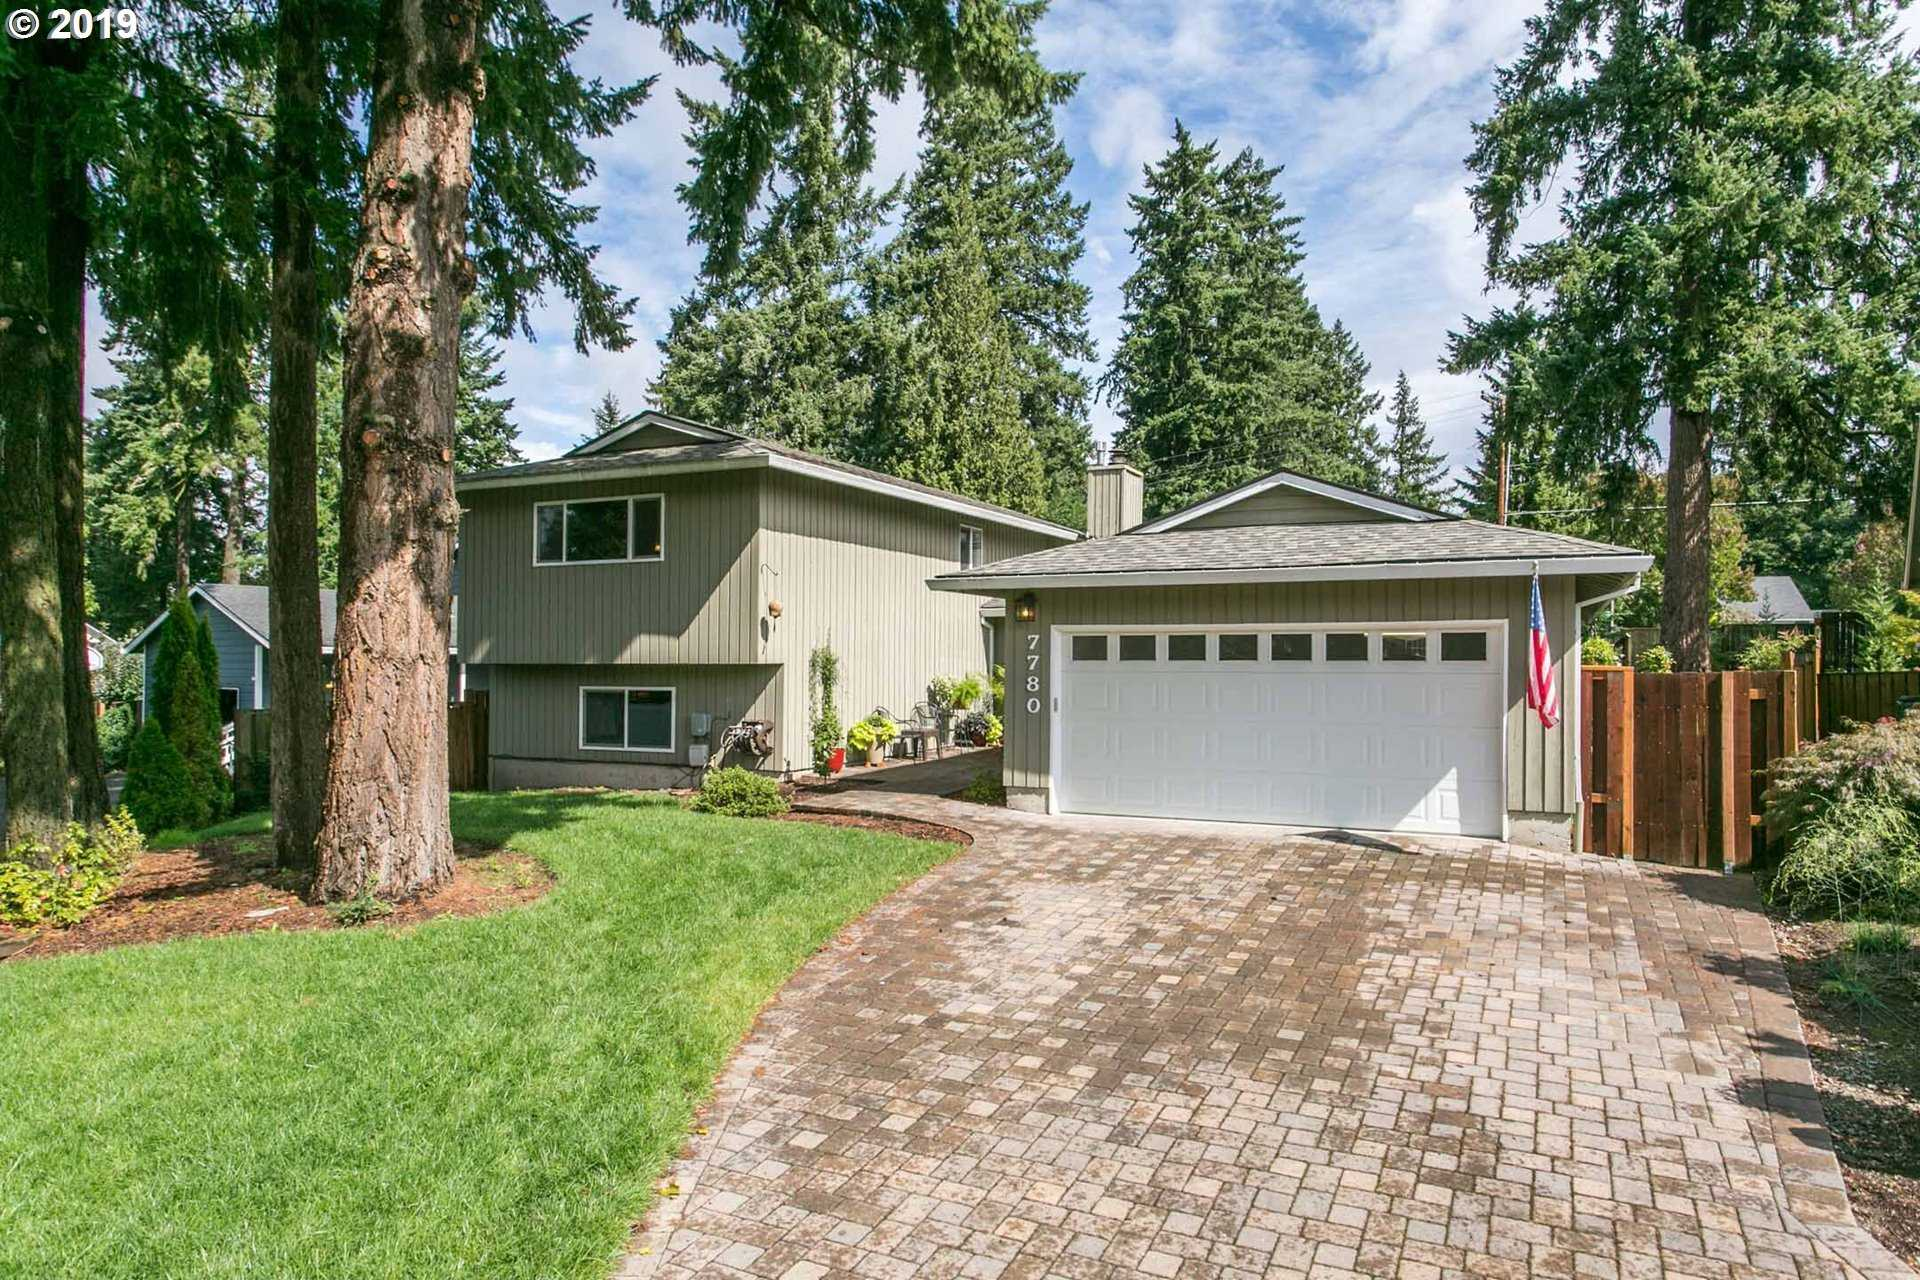 $515,000 - 4Br/3Ba -  for Sale in Beaverton